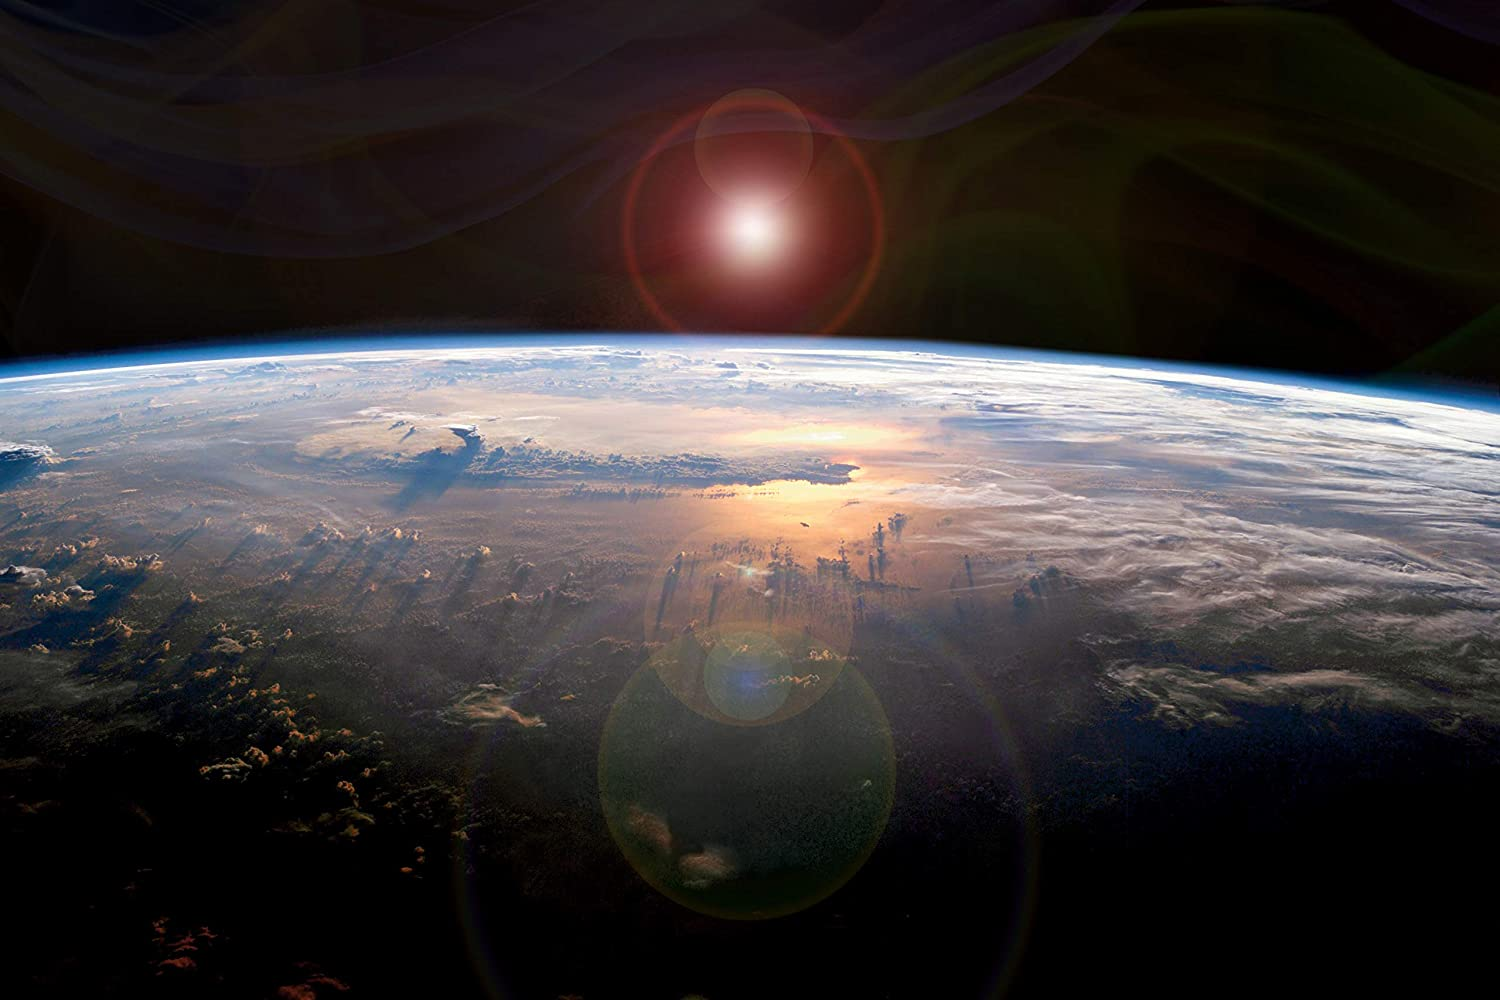 Sunset on Earth, Space View 250 Miles Away. Laminated Art Poster Print